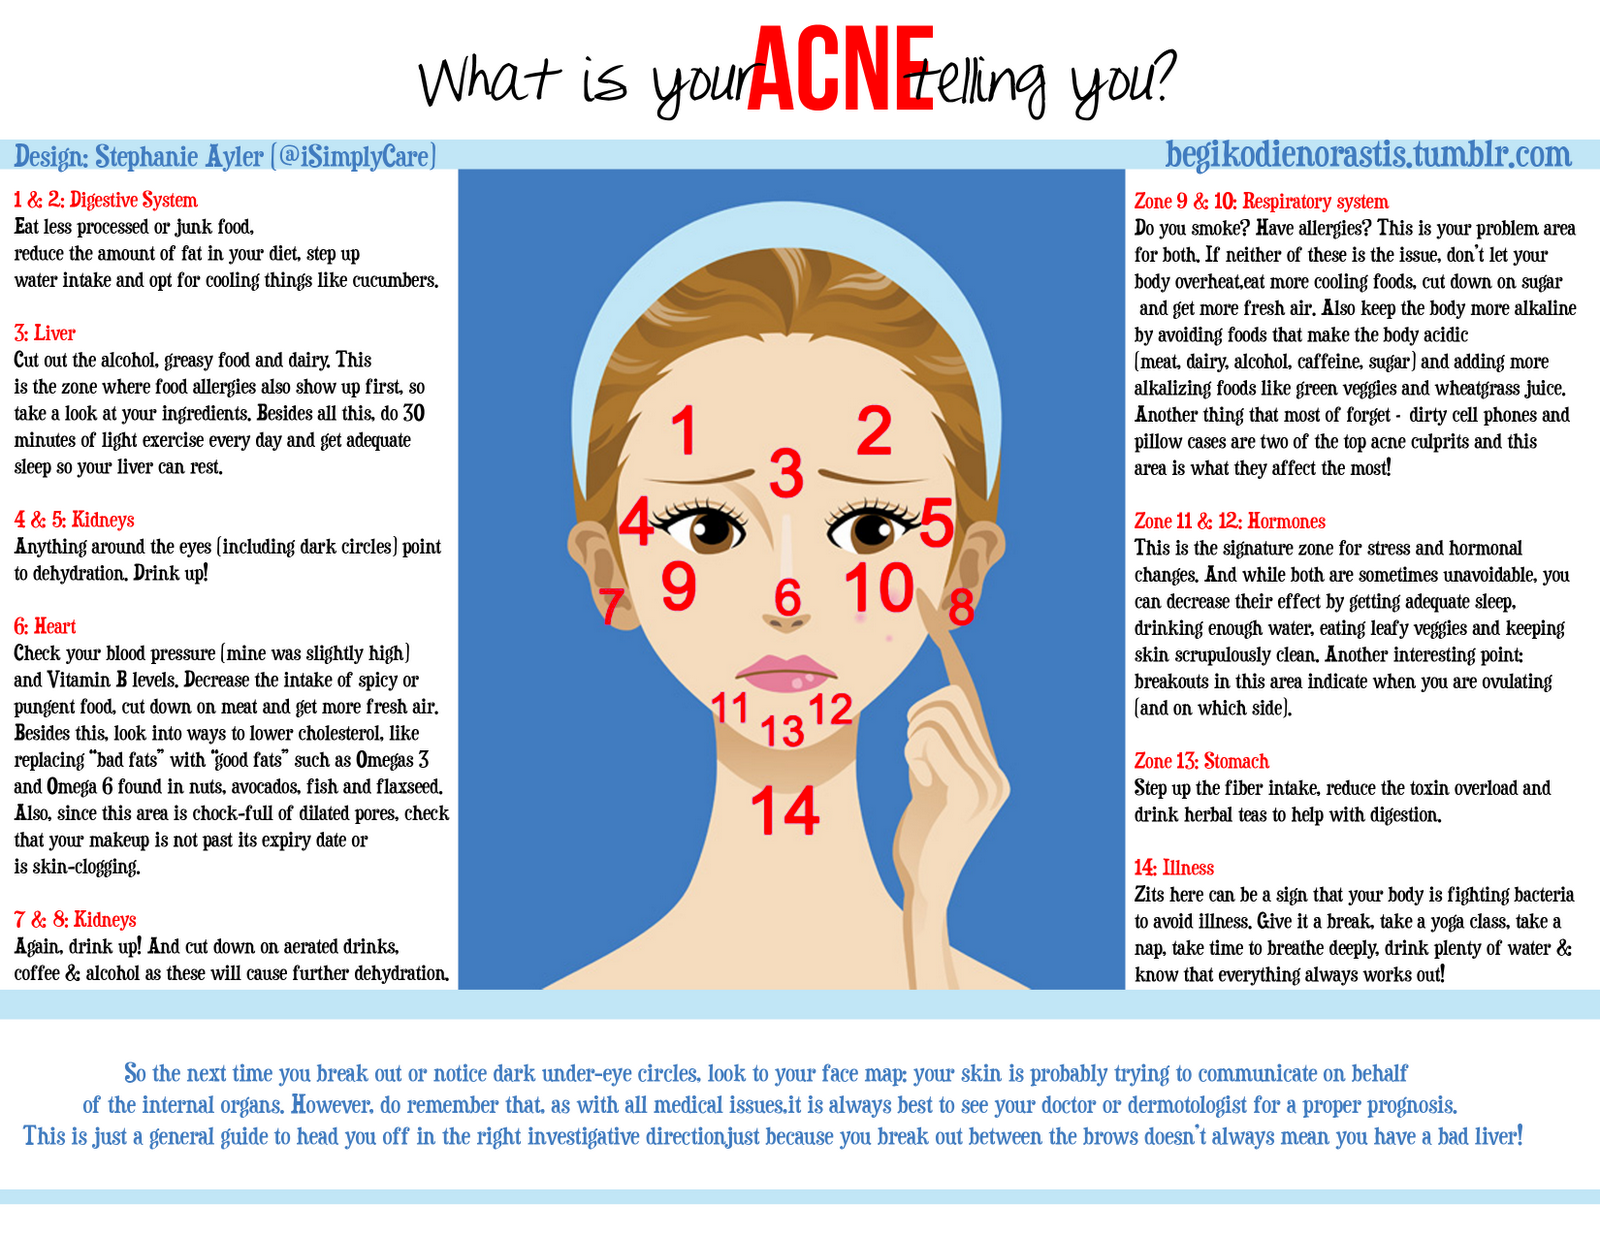 Acne on the face and what it means